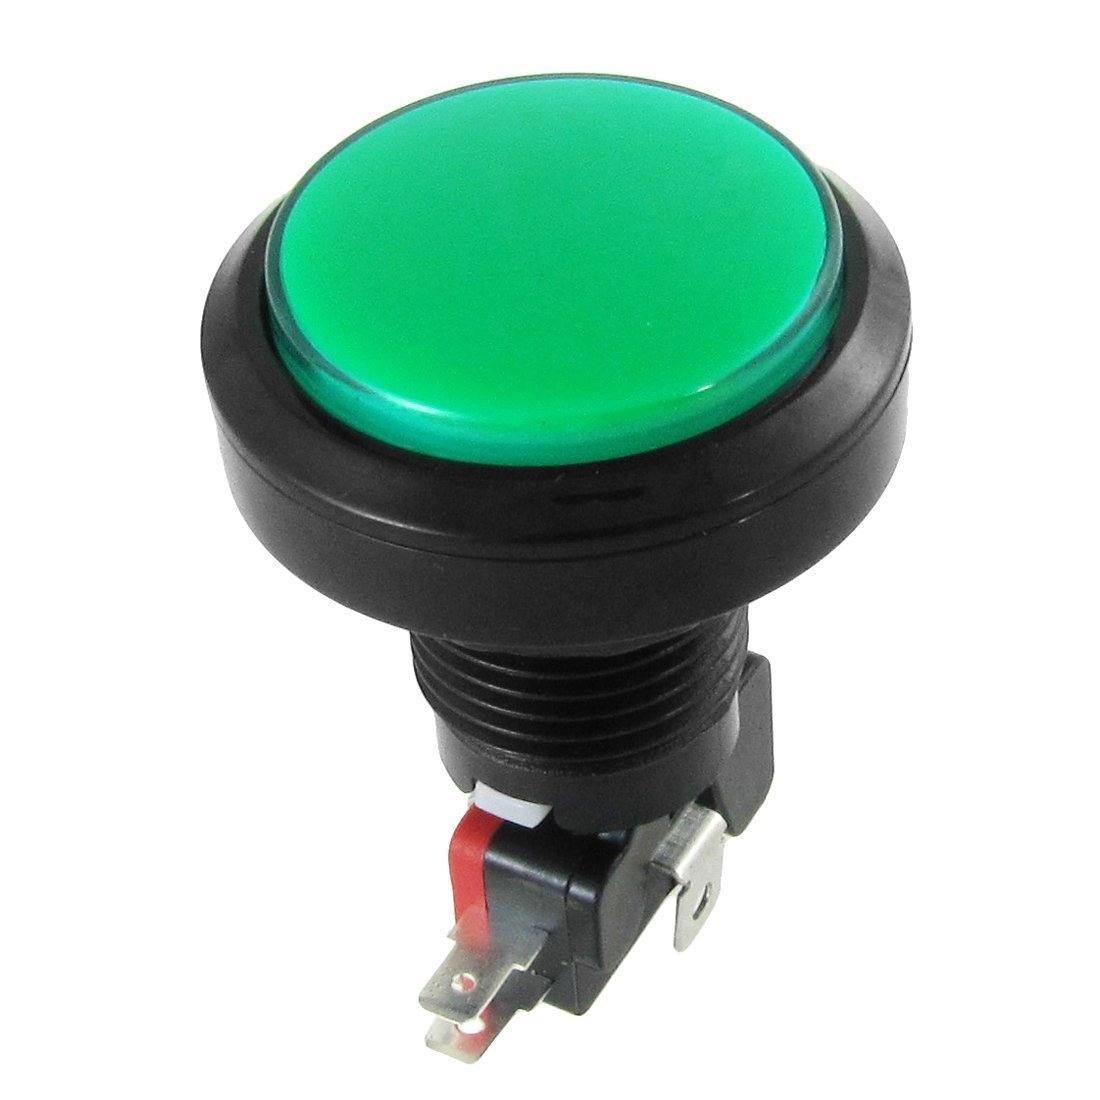 Momentary Push Button Switch - TOOGOO(R) 12V DC LED Light Illuminated Green Round Momentary Push Button Switch 1 NO 1 NC